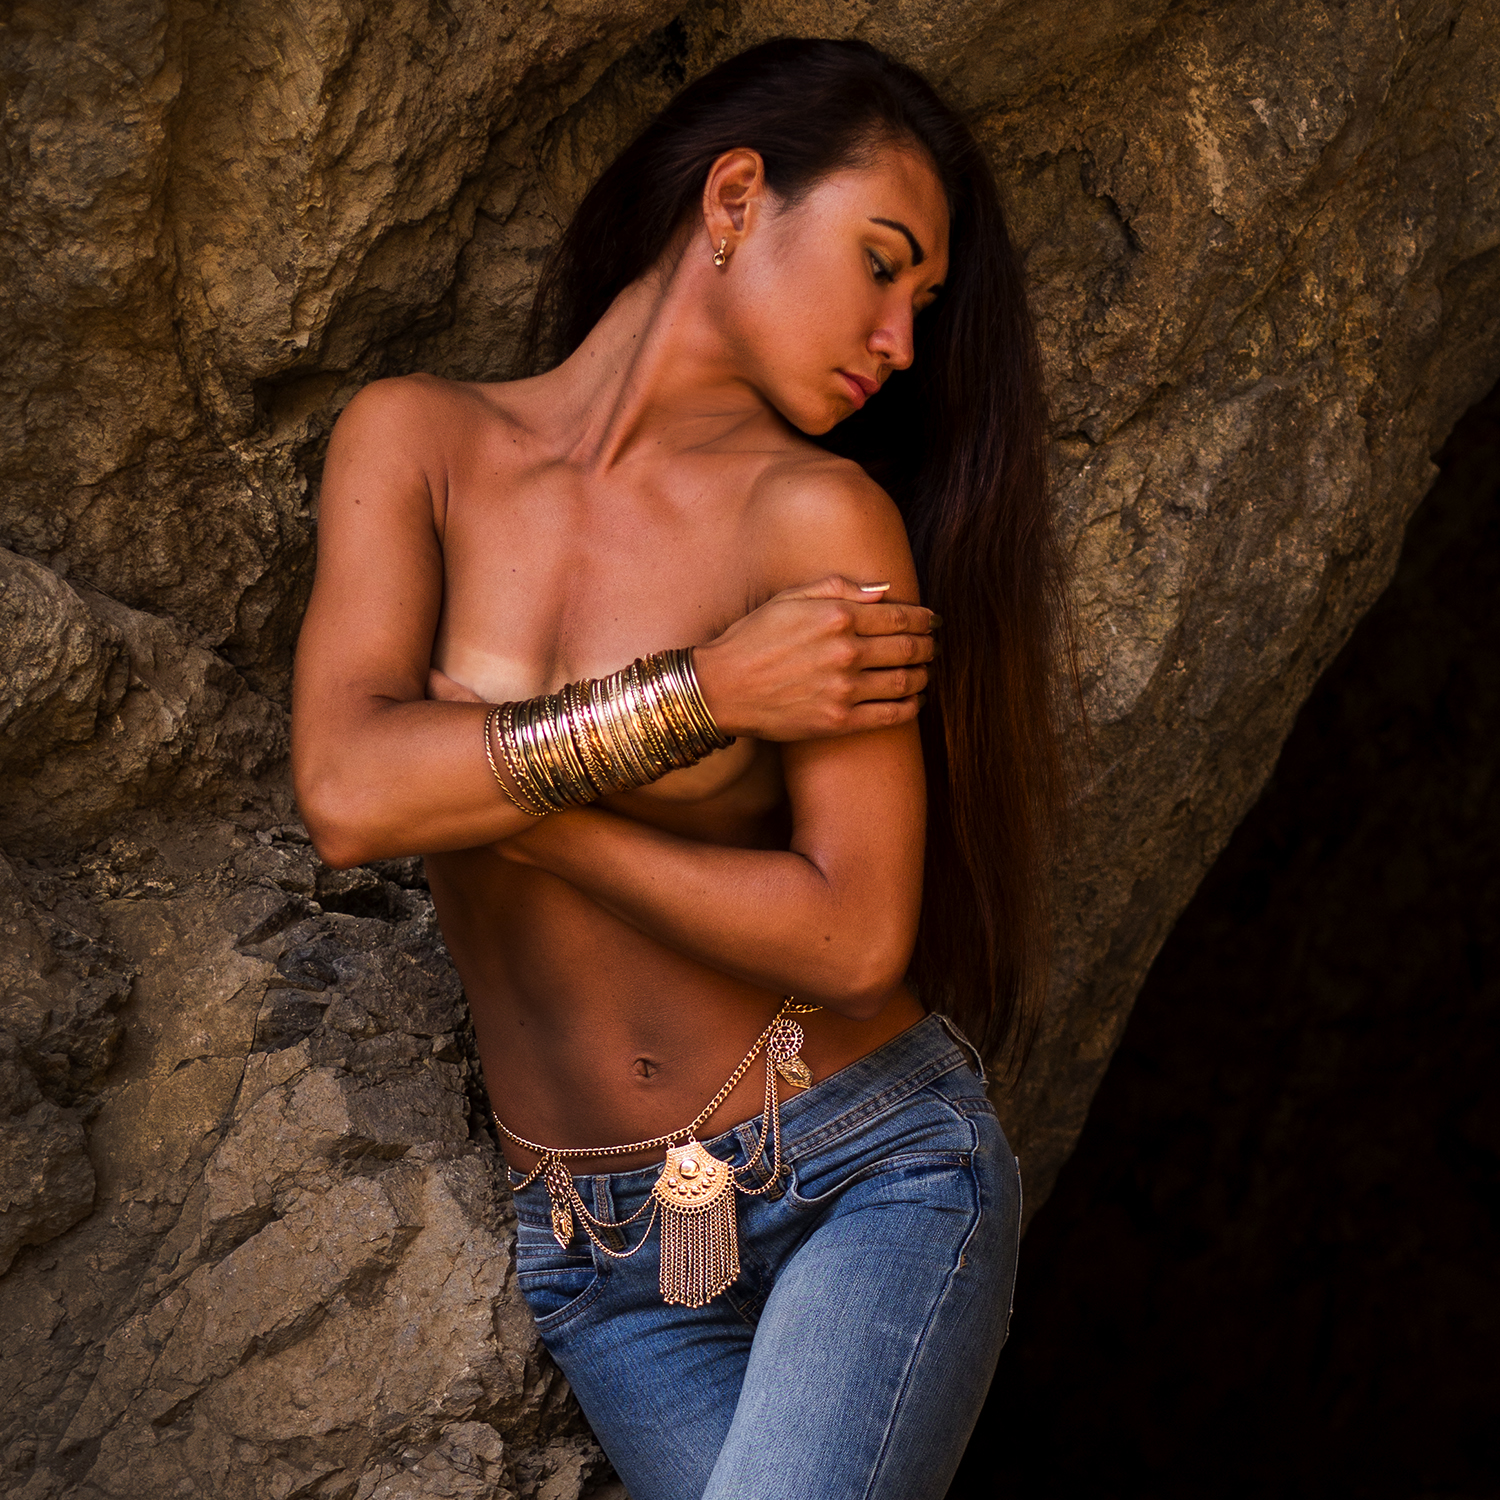 Jeans and Jewelry - Dinara Ainabekov